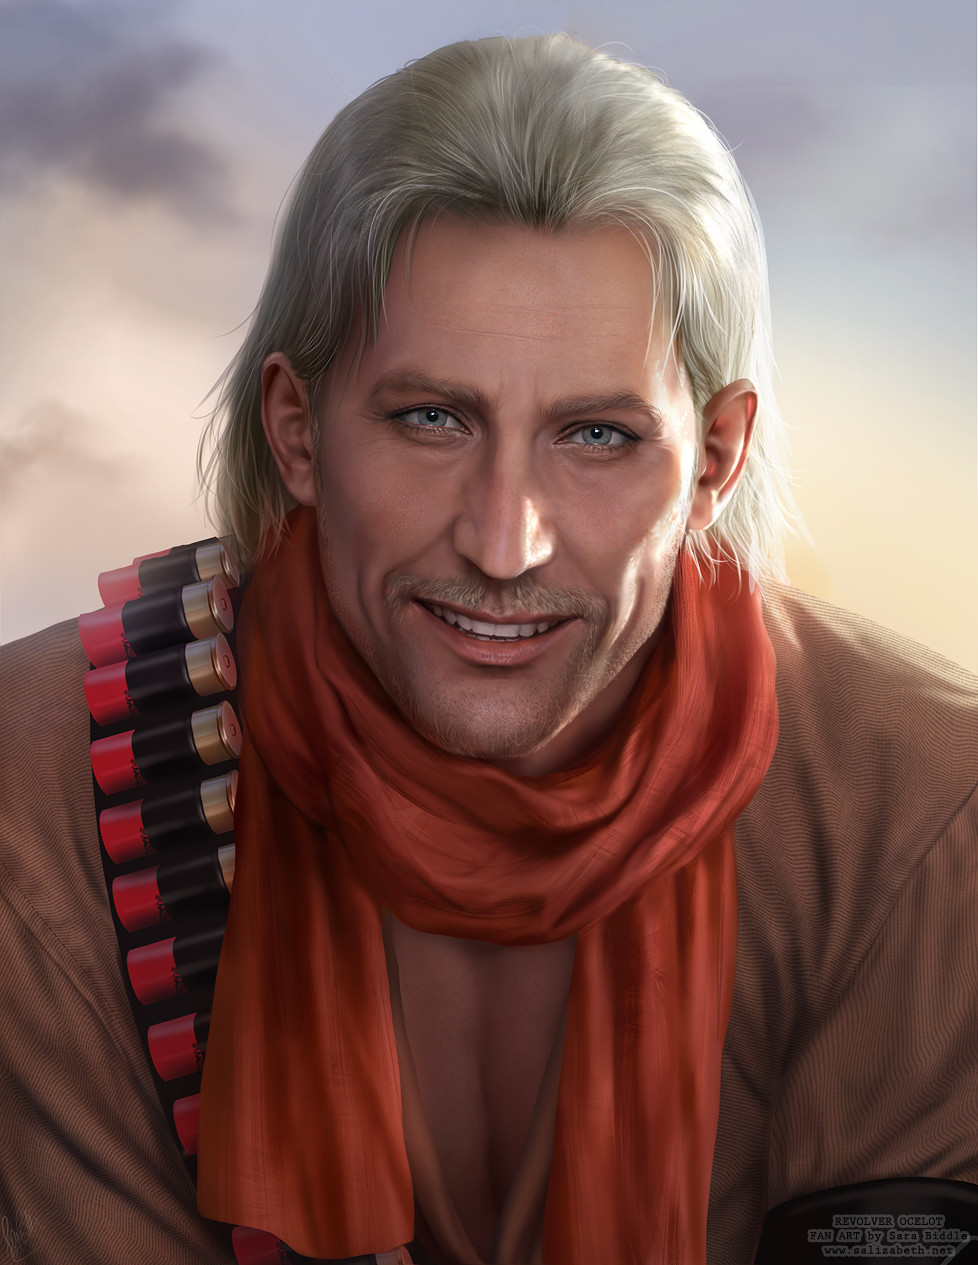 Fan Art: Revolver Ocelot